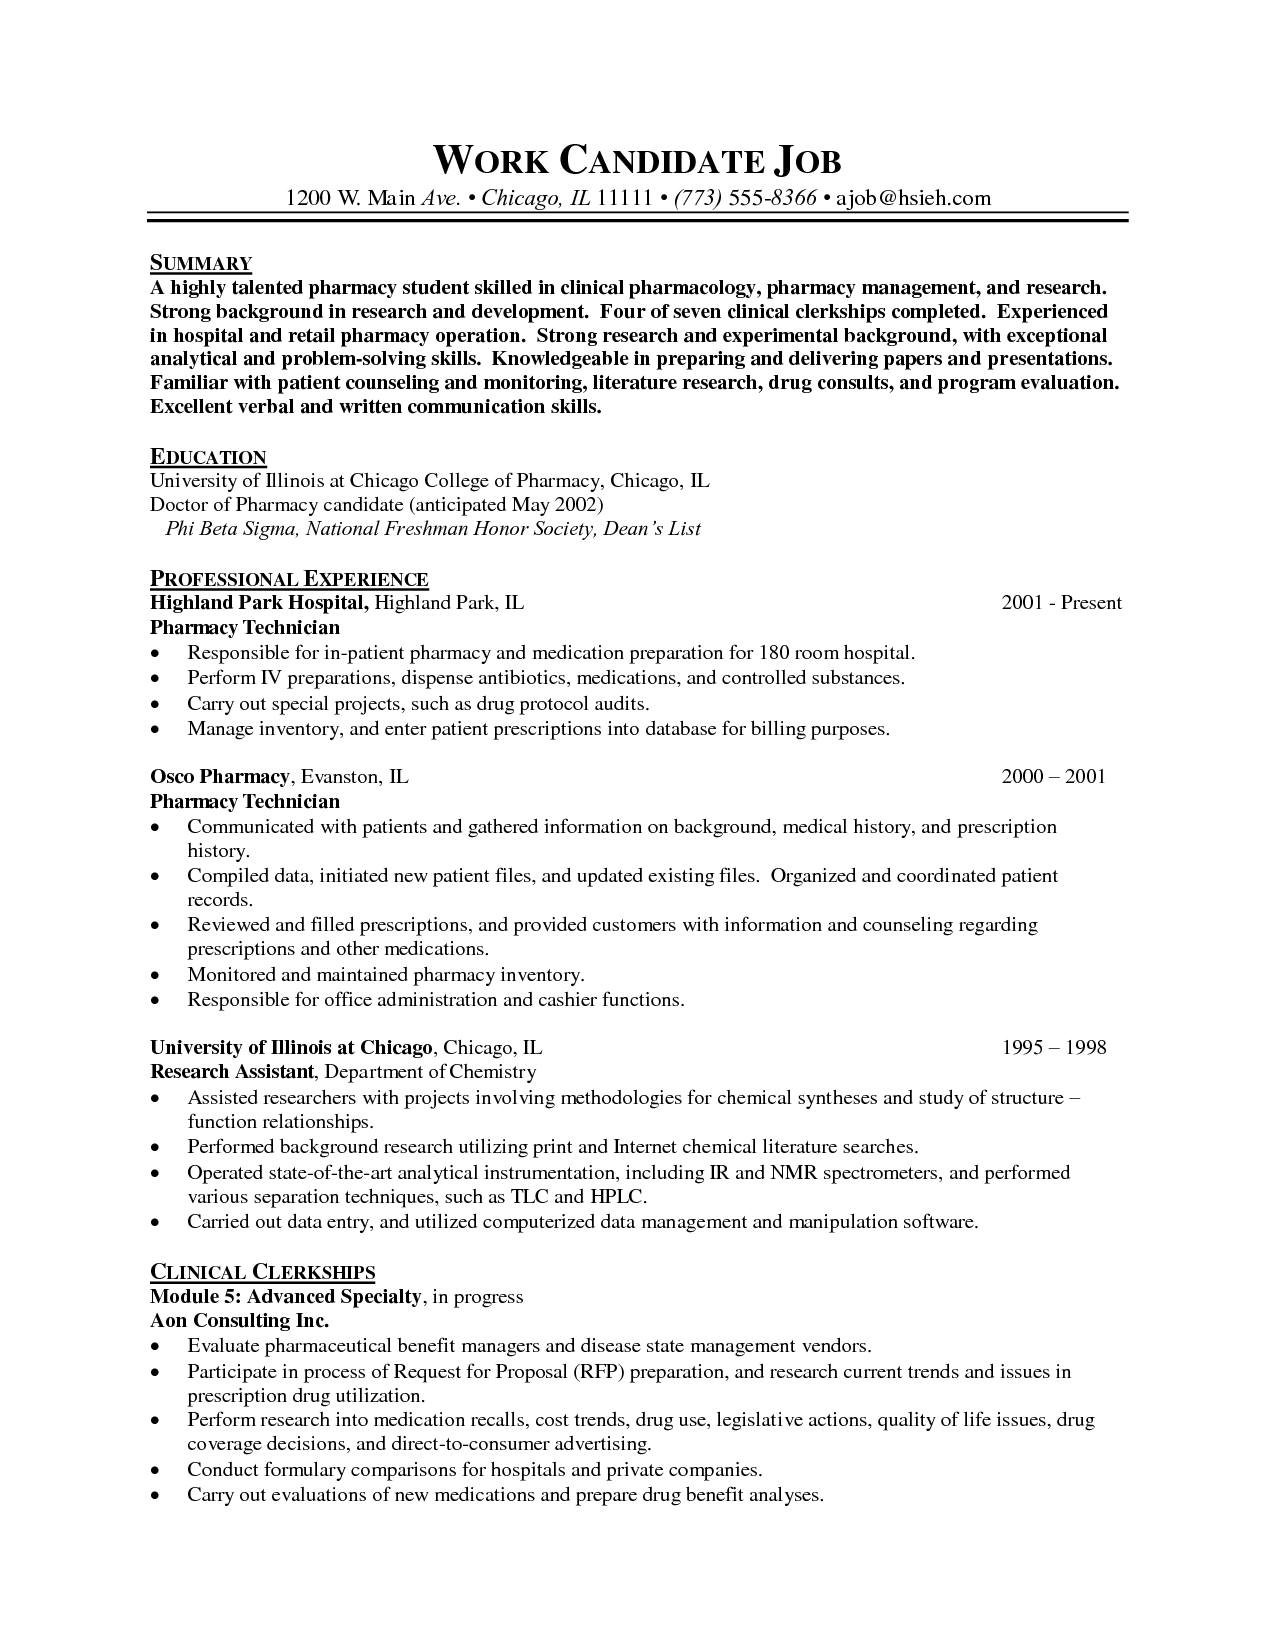 Surgical Technologist Resume with extraordinary ideas about sample of resume on pinterest leadership roles writing and teacher resumes with Surgical Tech Resume Tech Resume Tips